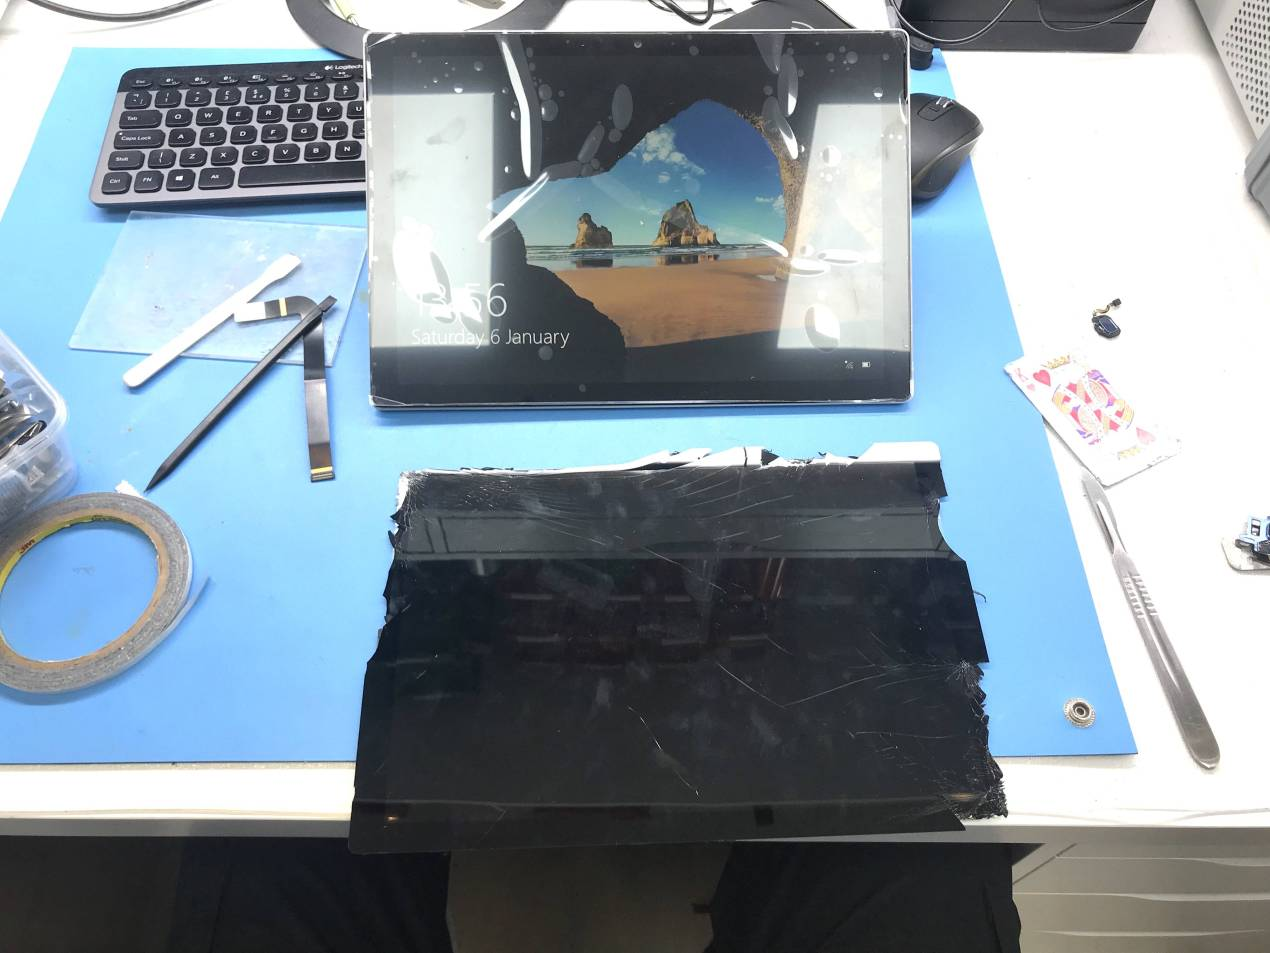 We are testing here the new screen on the Surface Pro 4 below is the broken screen which we removed